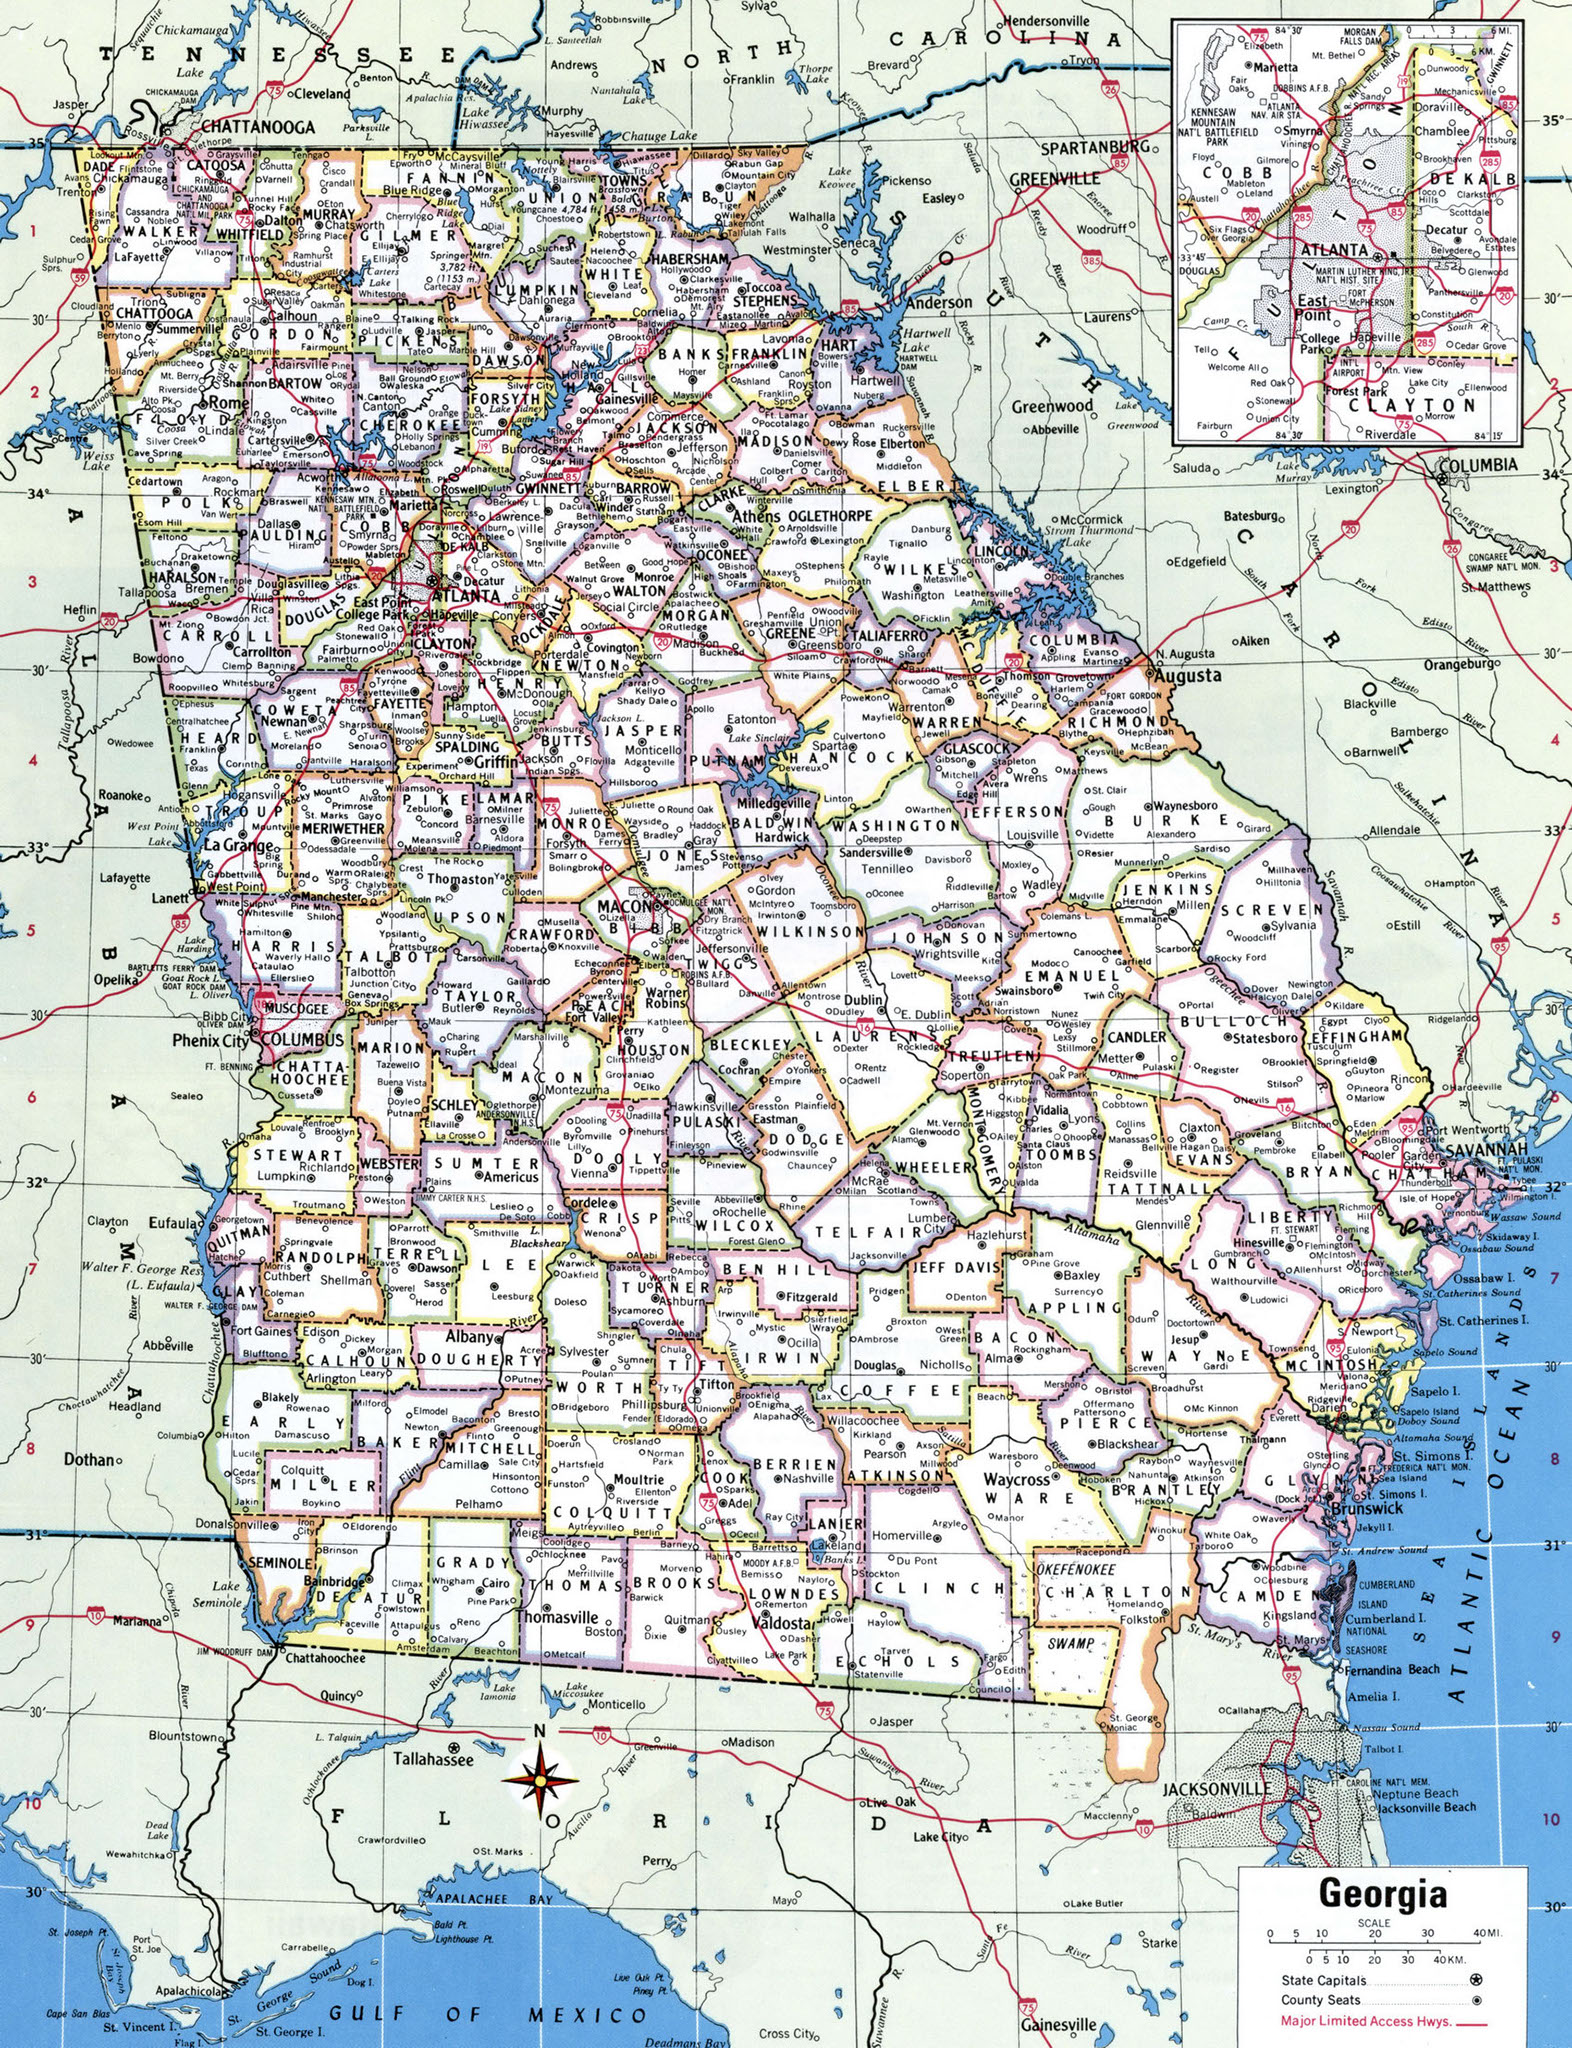 State Of Georgia County Map.Georgia County